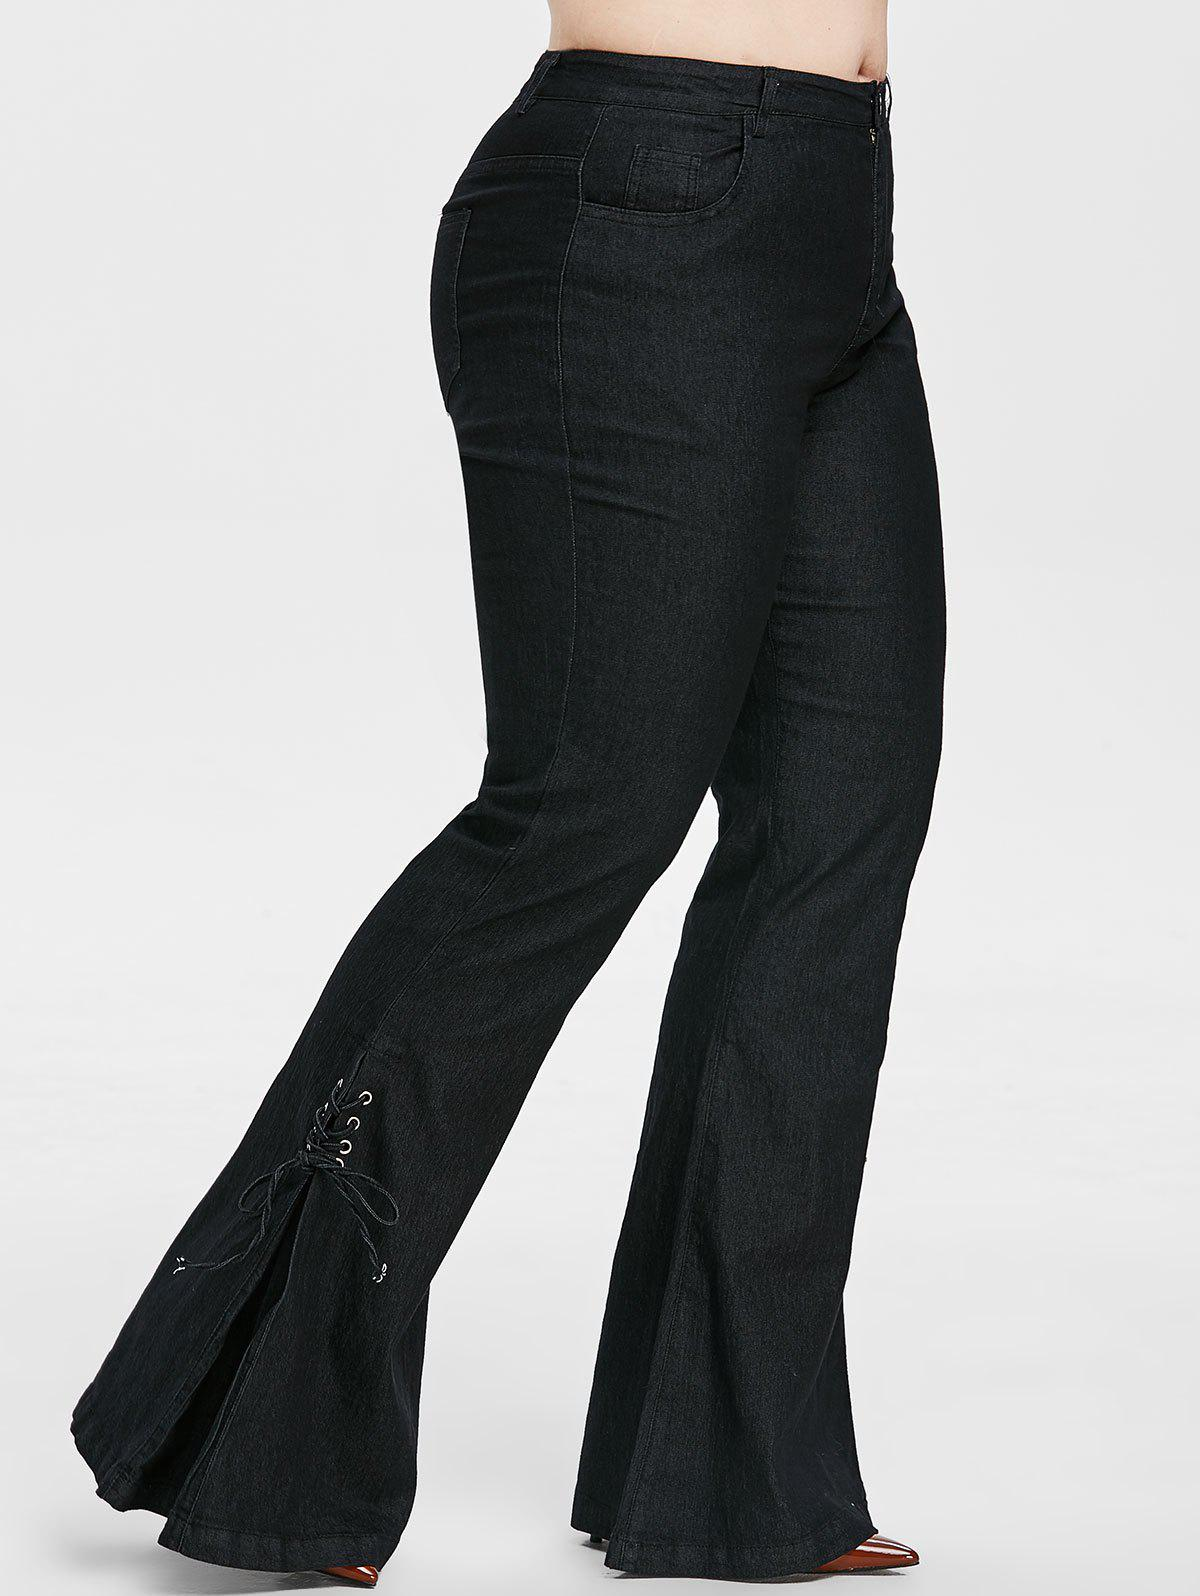 Fancy Plus Size High Rise Lace Up Flare Jeans